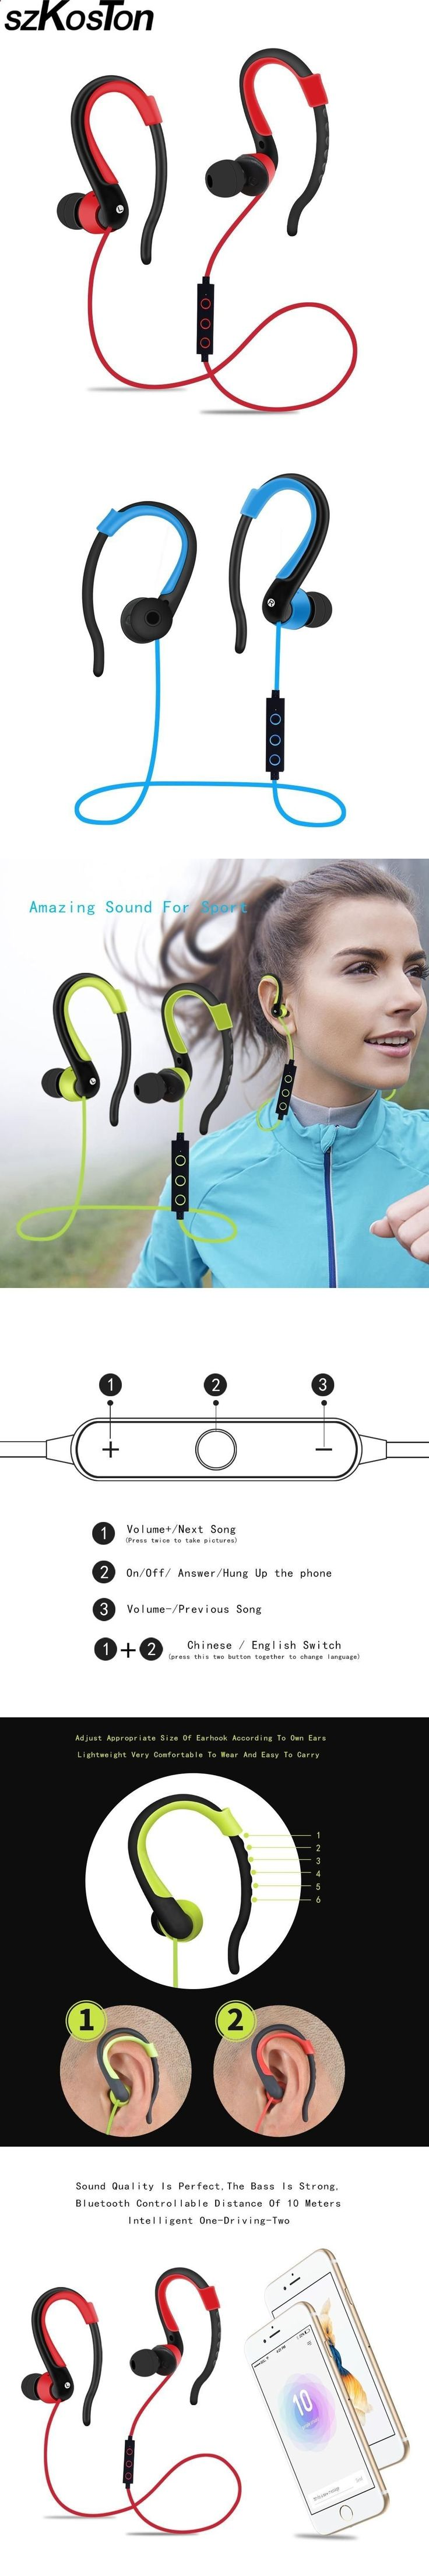 Sports Headphones - Sports Headphones - Wireless Bluetooth Earphones Super Bass Bluetooth Sport headphones Stereo Music Earbud With Microphone For Mobile Phone running - If you usually go out to run, walk or any other sport in which you usually carry music to accompany or motivate you, we have selected 13 models of sports headphones that we consider among the best in the market for different aspects, from comfort to use to design, sound quality or value for money, so that you find vari...